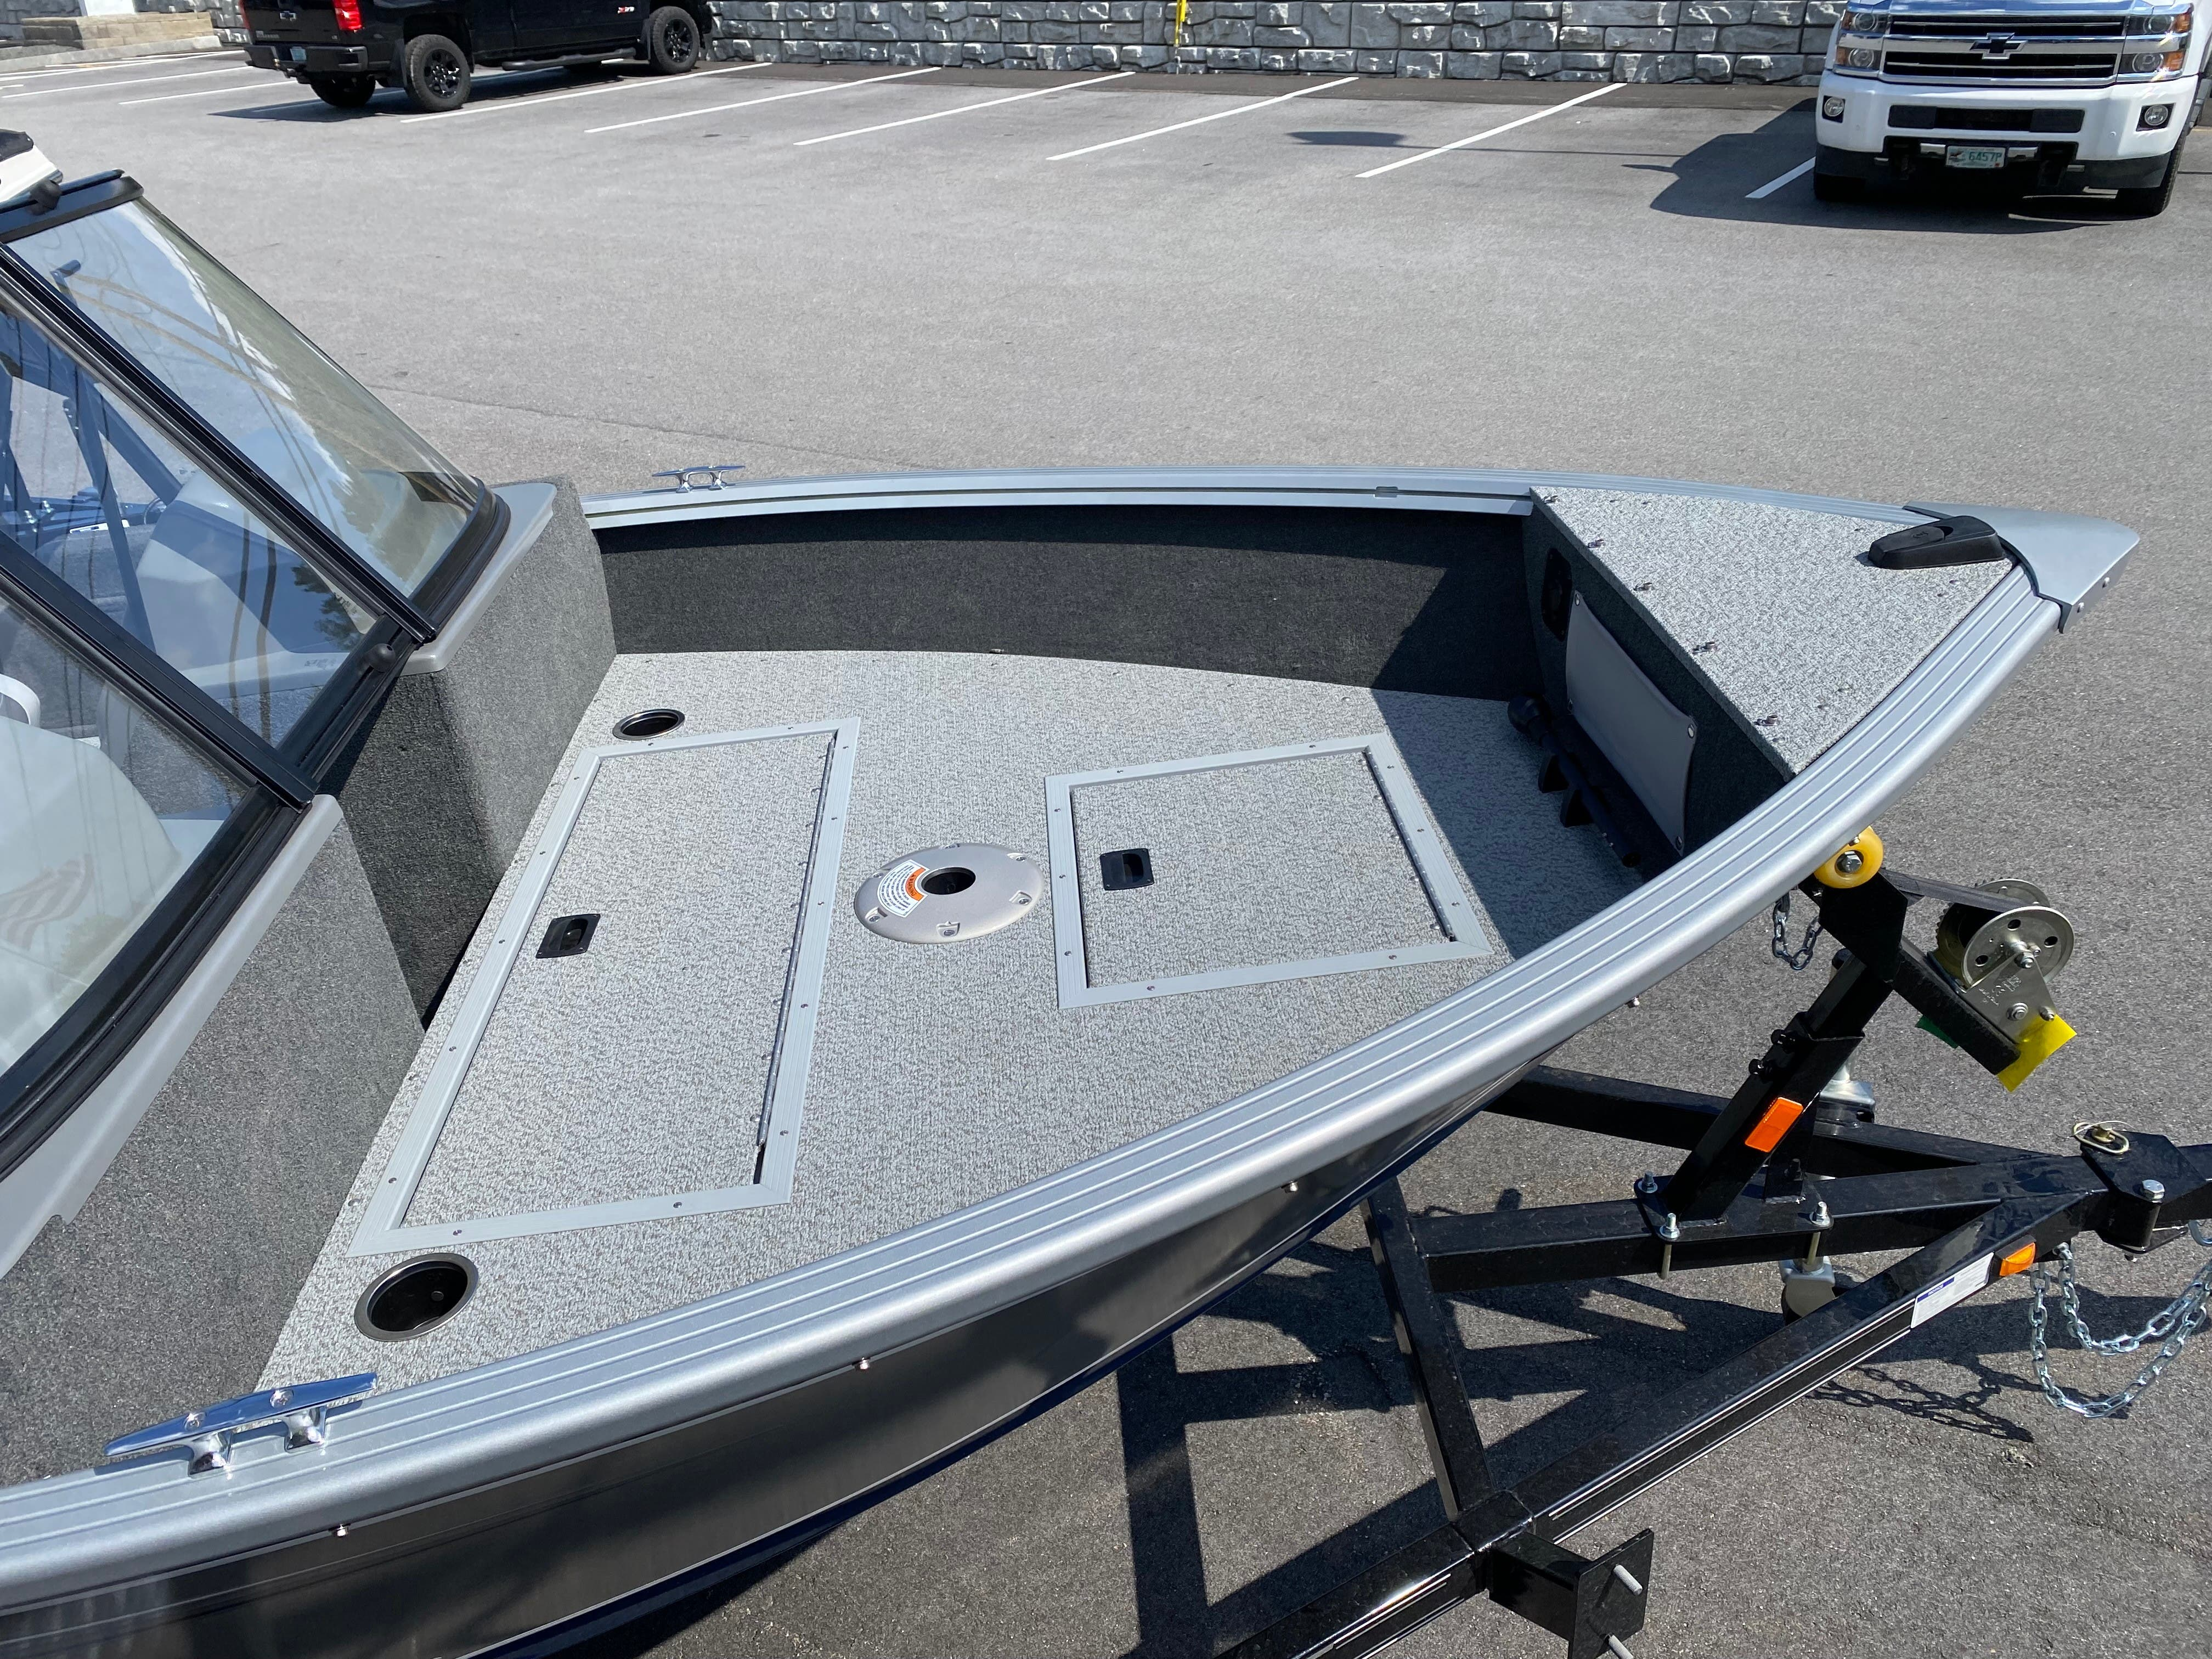 2022 Starcraft boat for sale, model of the boat is Stealth 166 DC & Image # 6 of 9